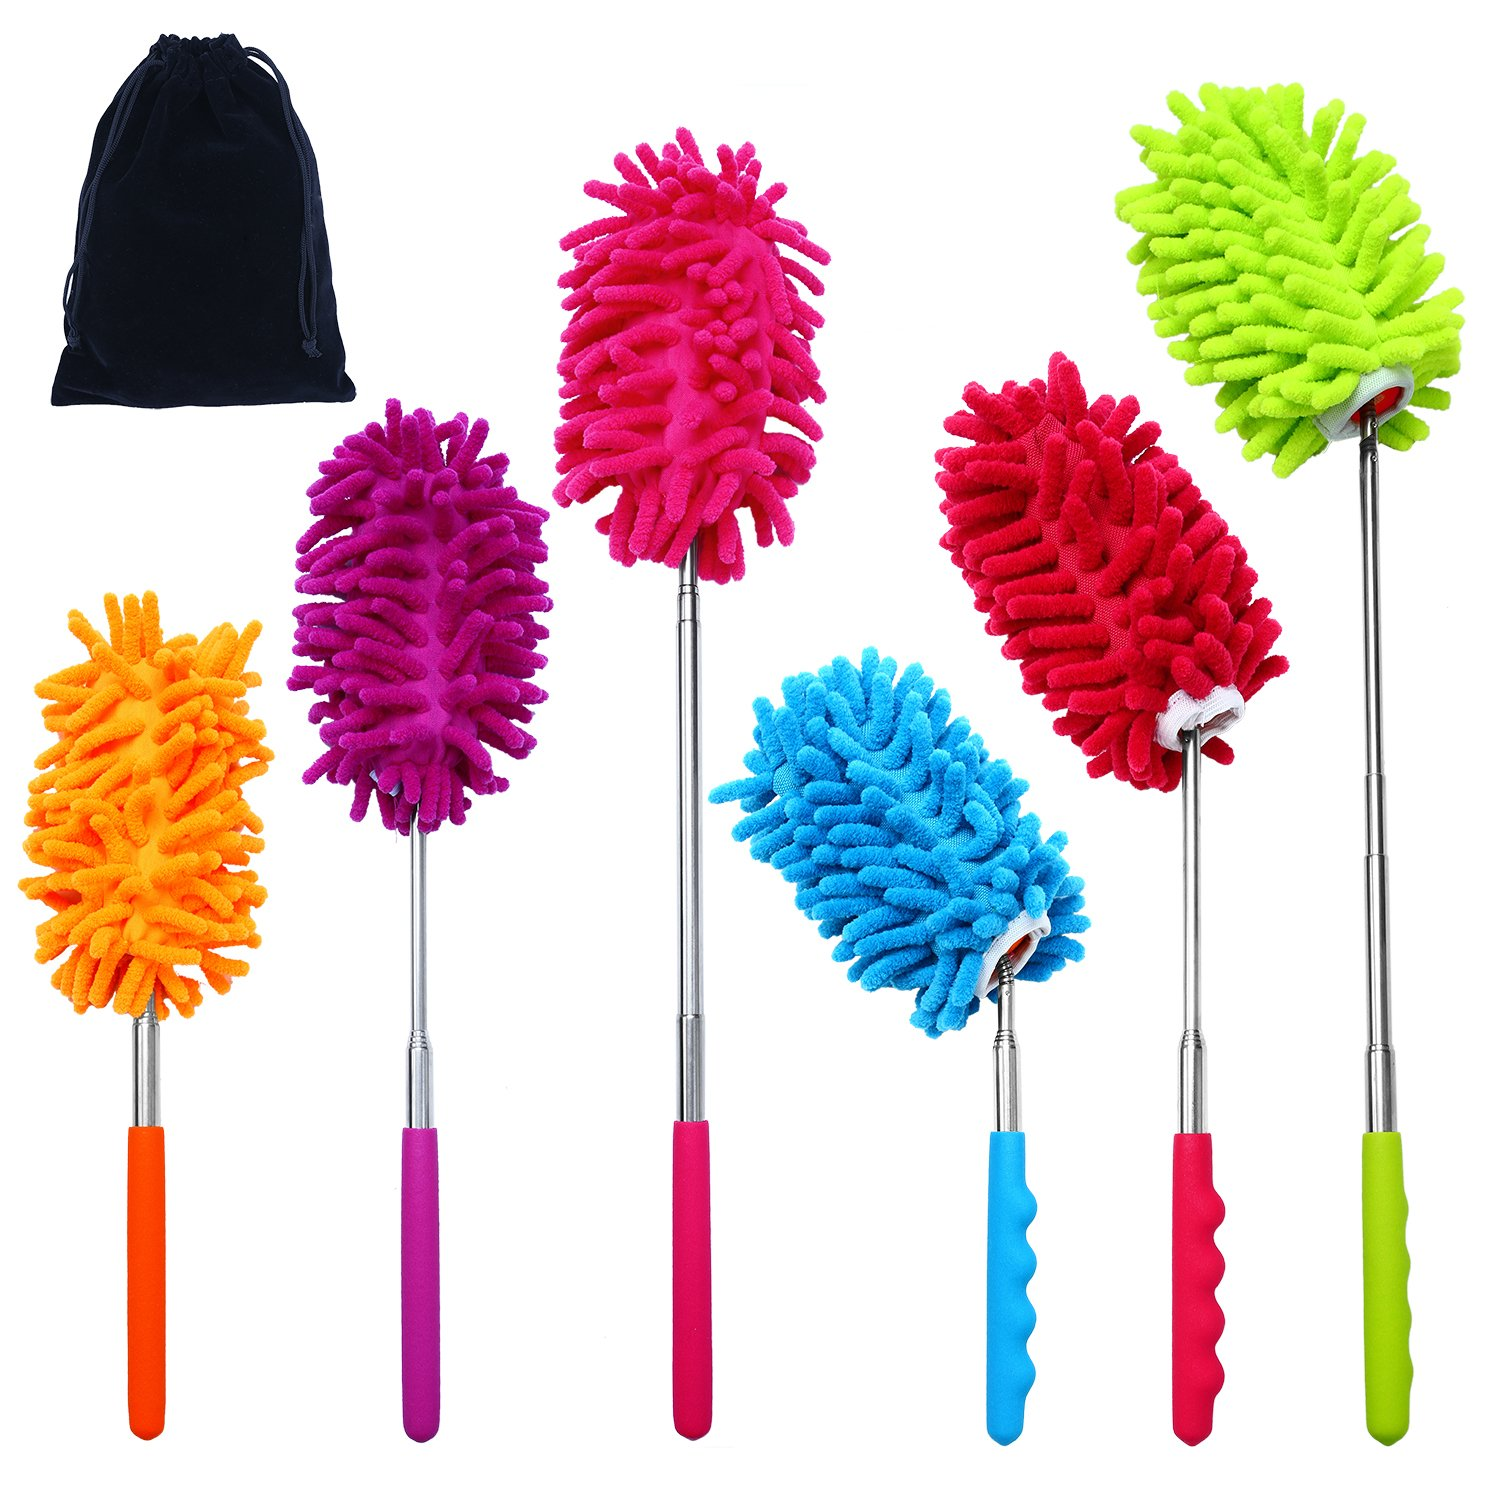 Aneco 6 Pack Microfiber Bendable Extendable Dusters Brush Washable Dusting Brush with Telescoping Pole for Home Office Car, 3 Bendable and 3 Straight